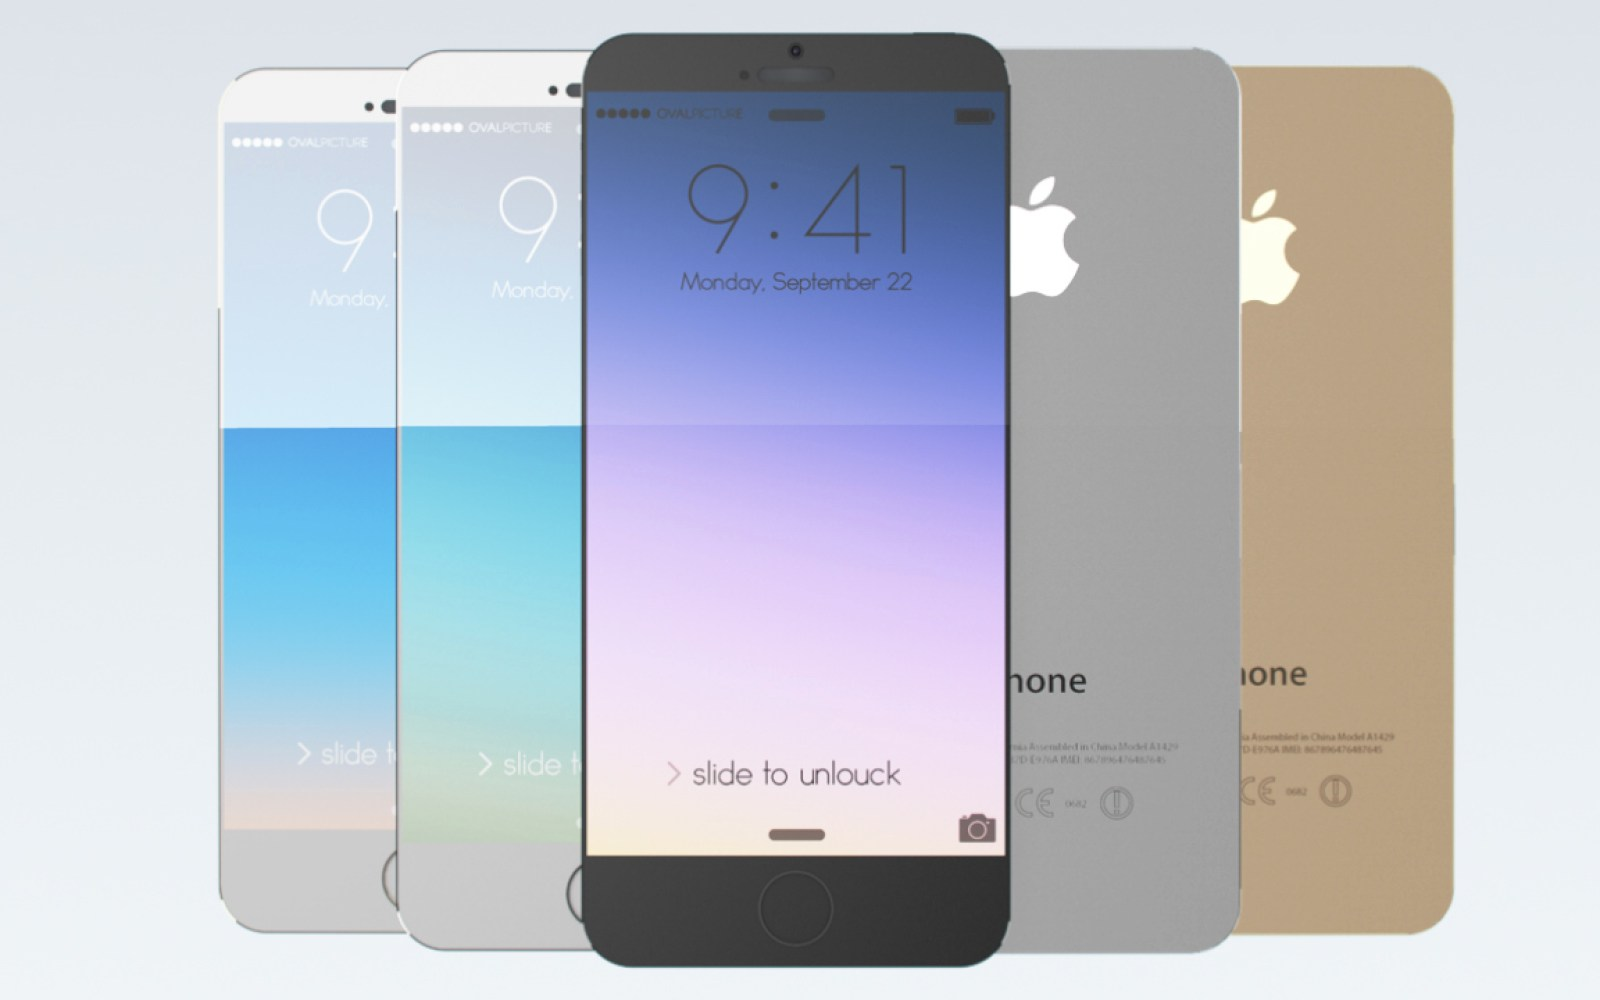 Report: iPhone 6 will use new display tech for thinner design, could cause yield issues